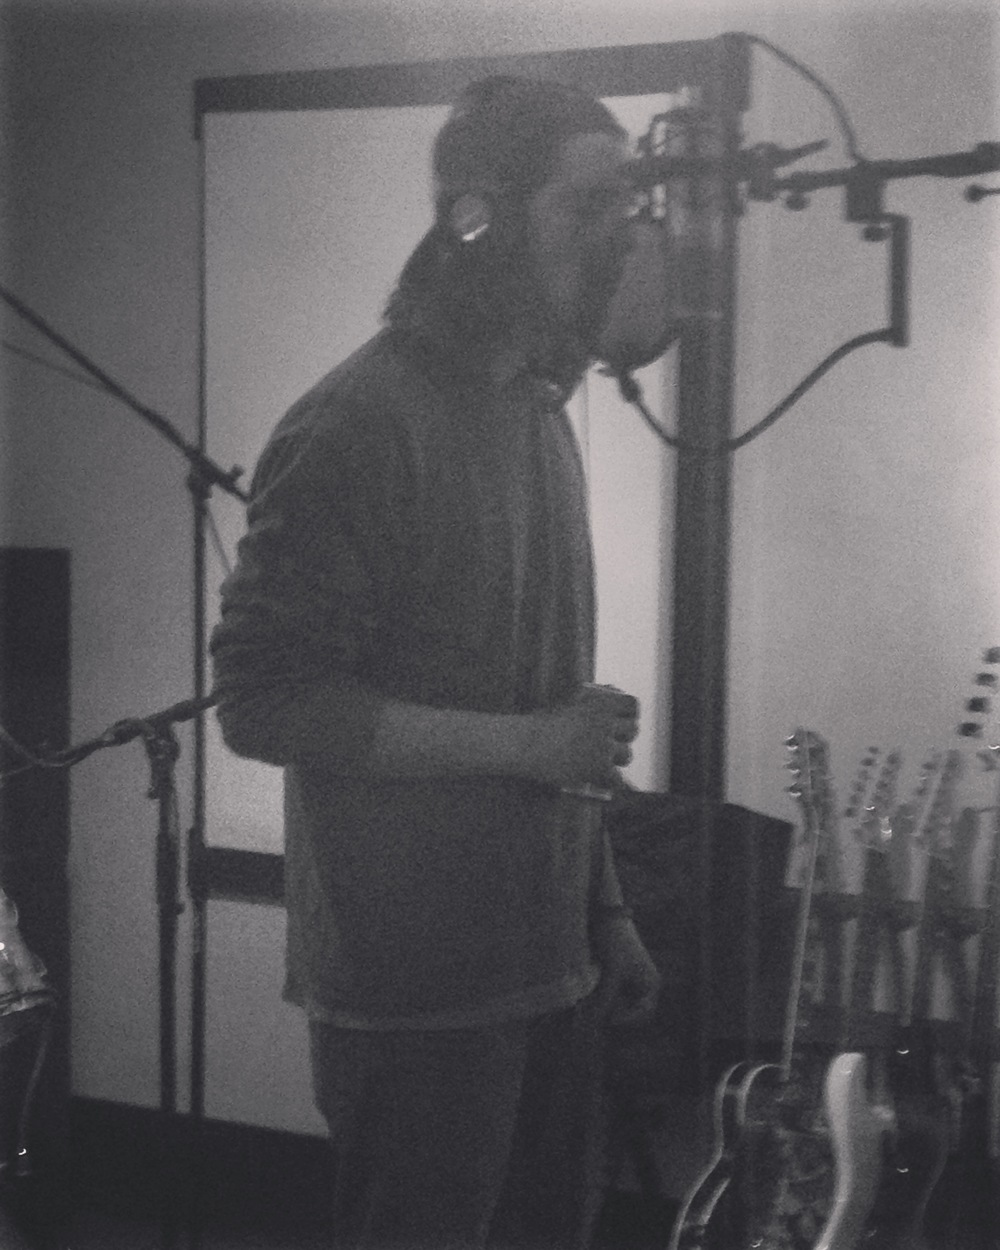 Kyle tracking vocals